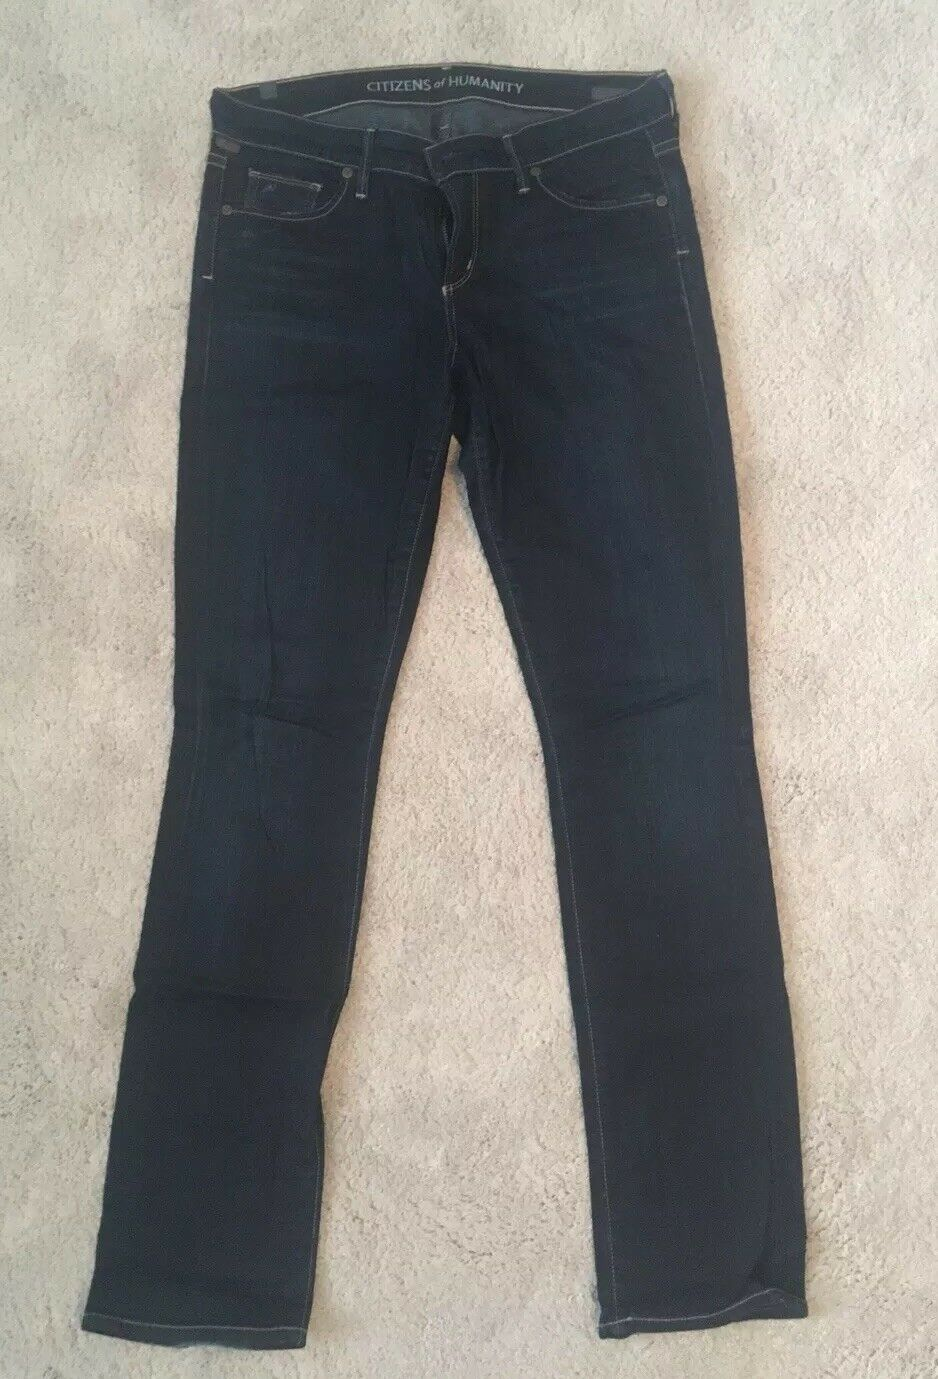 CITIZENS OF HUMANITY AVA Low Rise Straight Jeans Size 28